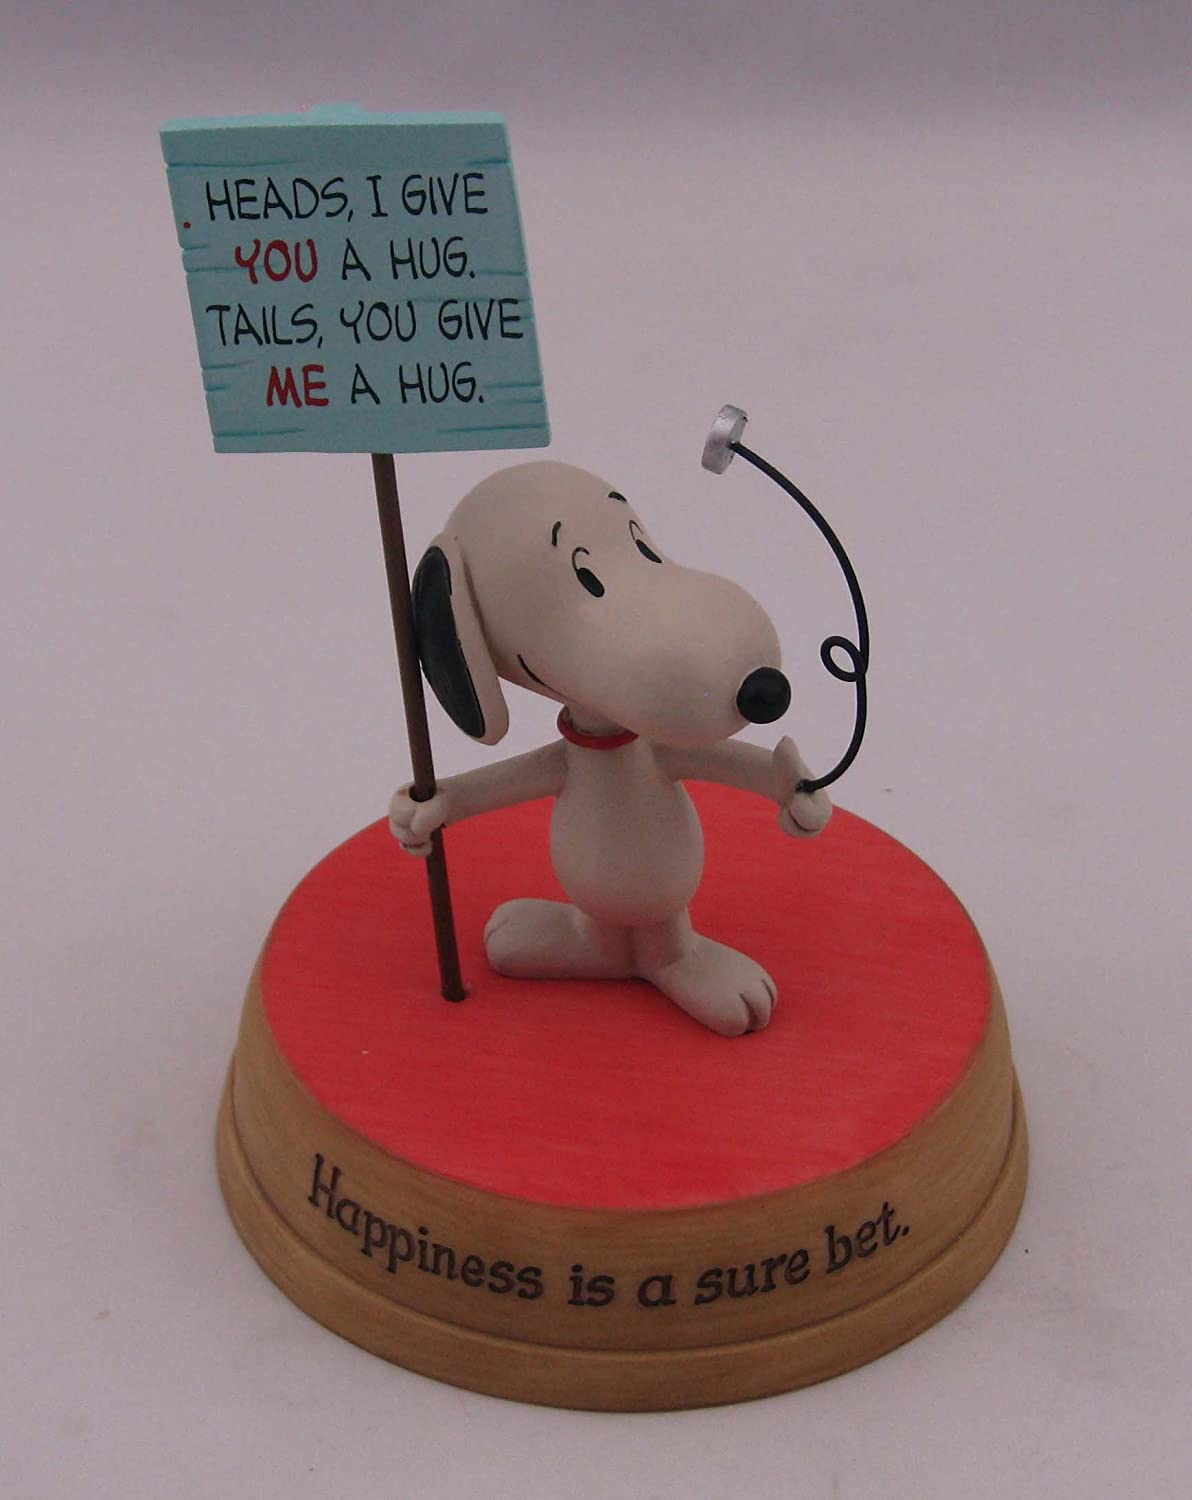 Hallmark Peanuts Happiness is a Sure Bet Snoopy Figurine